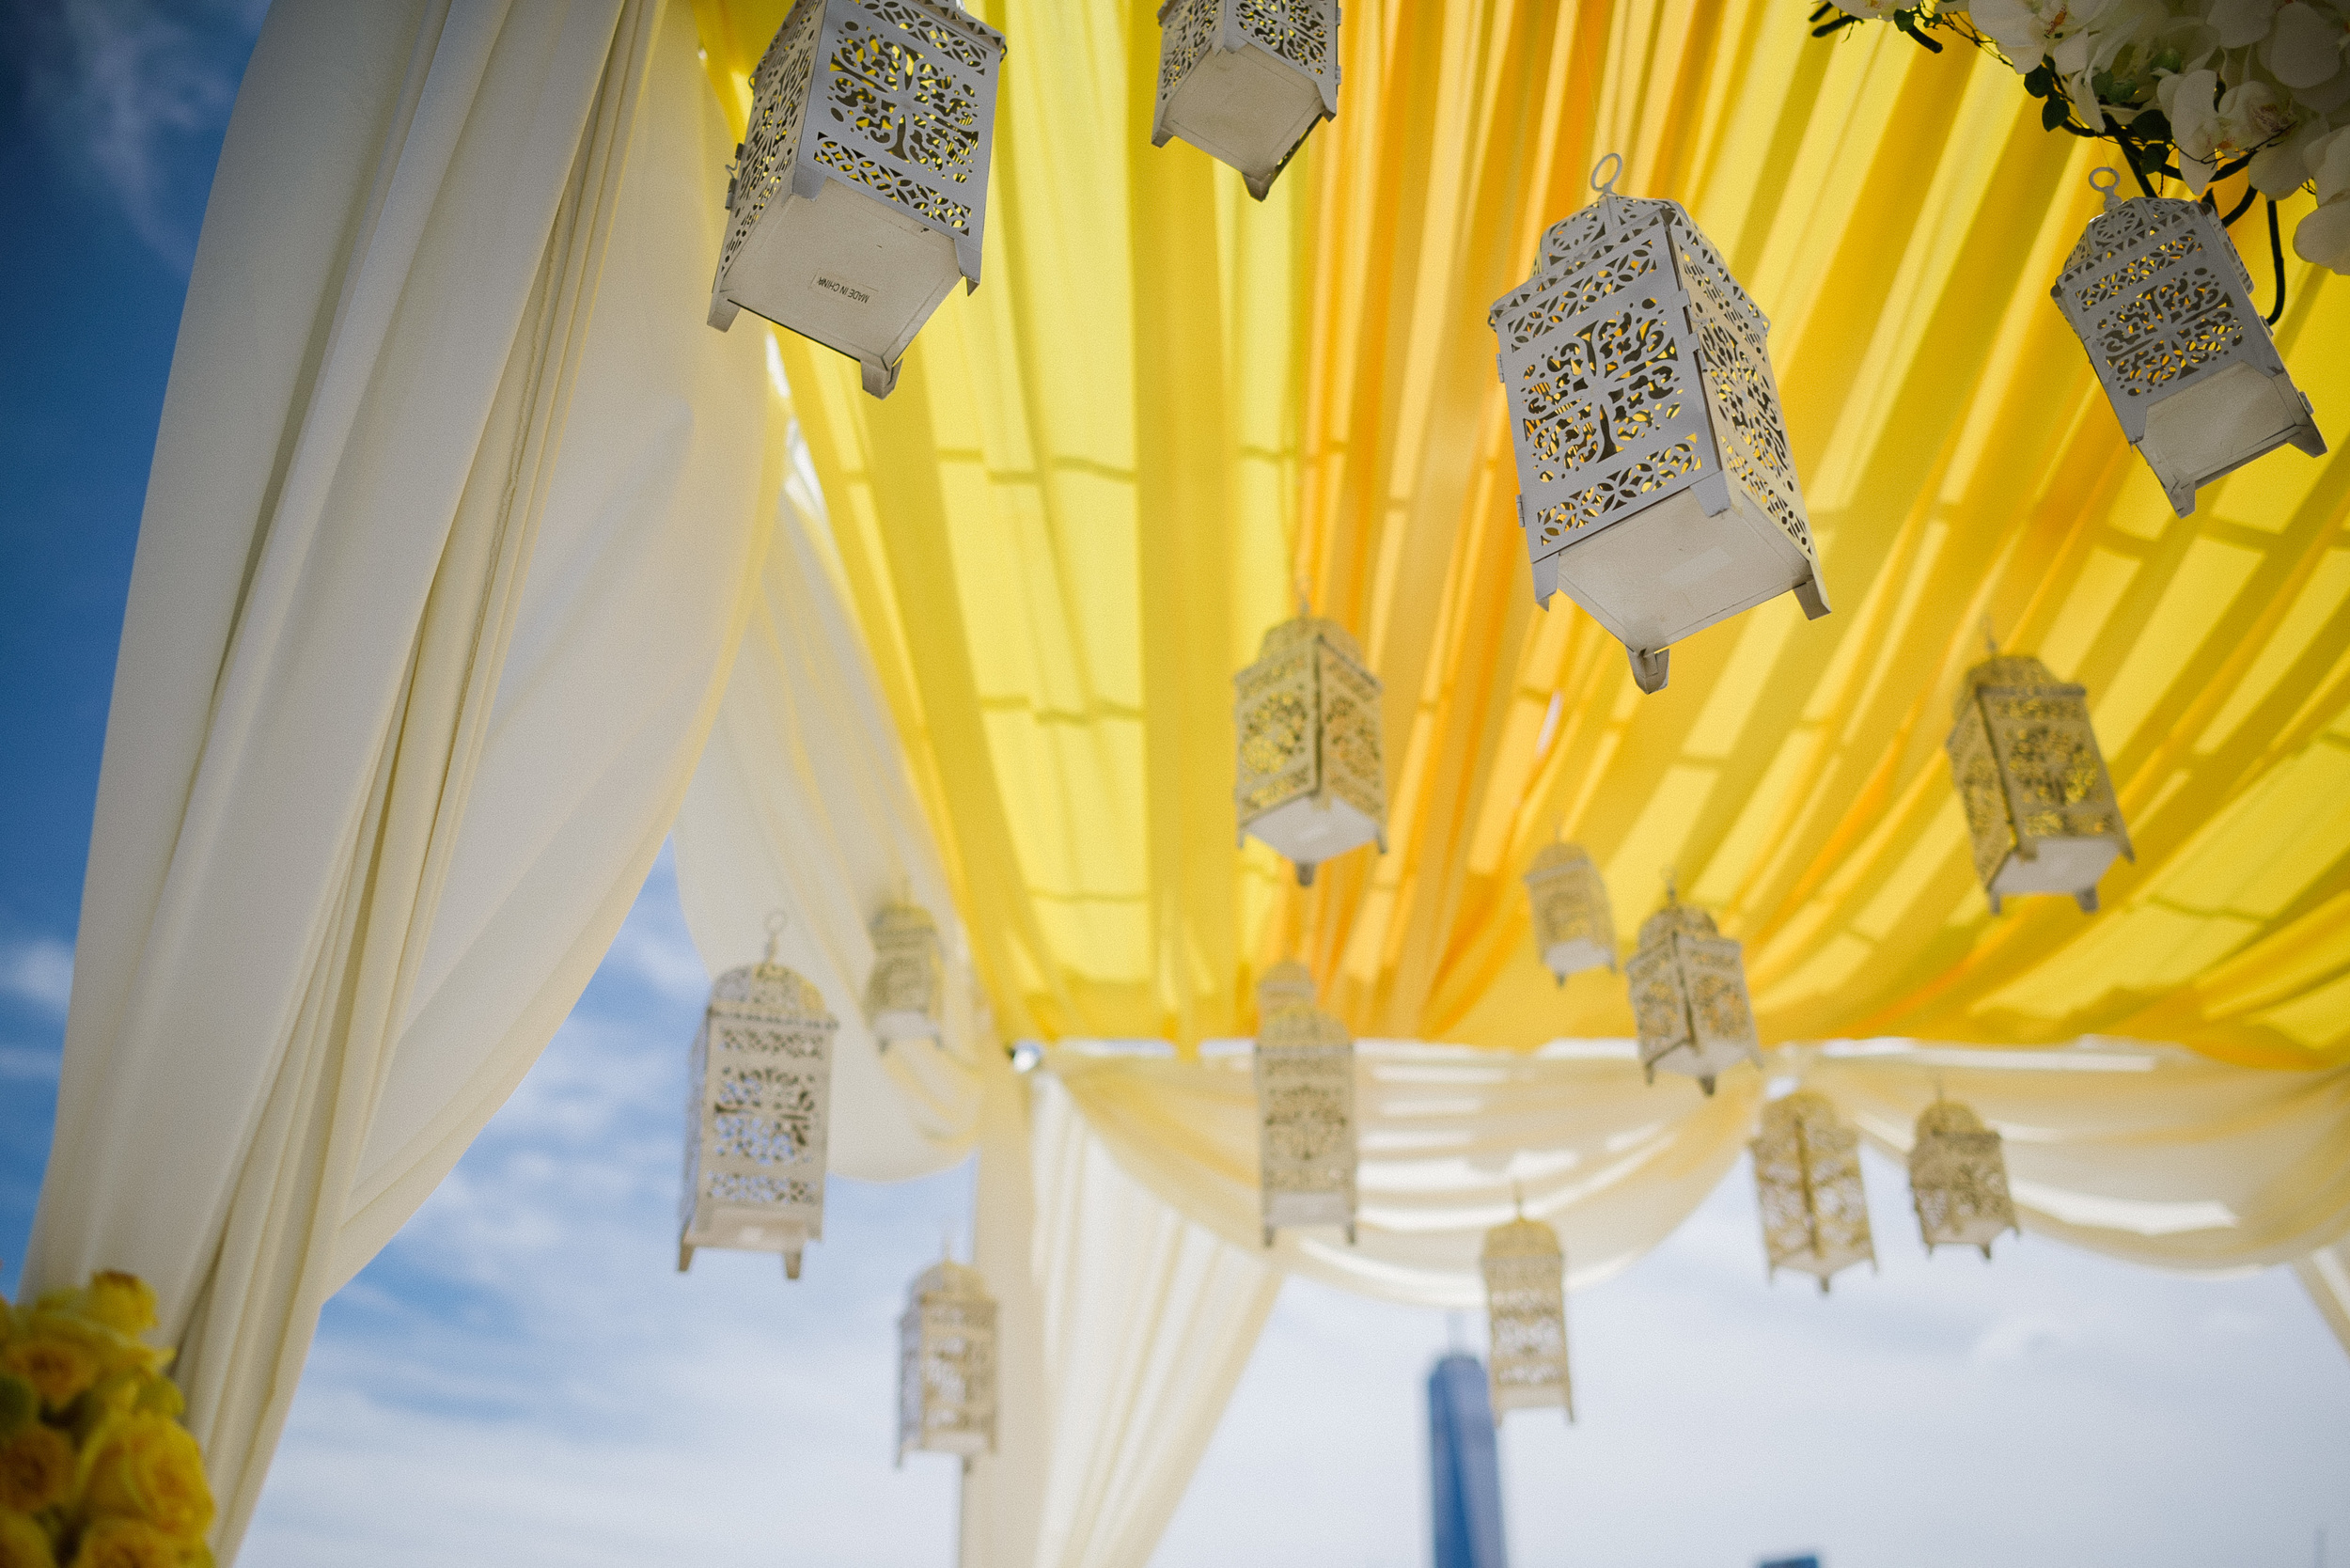 LANTERNS IN MANDAP